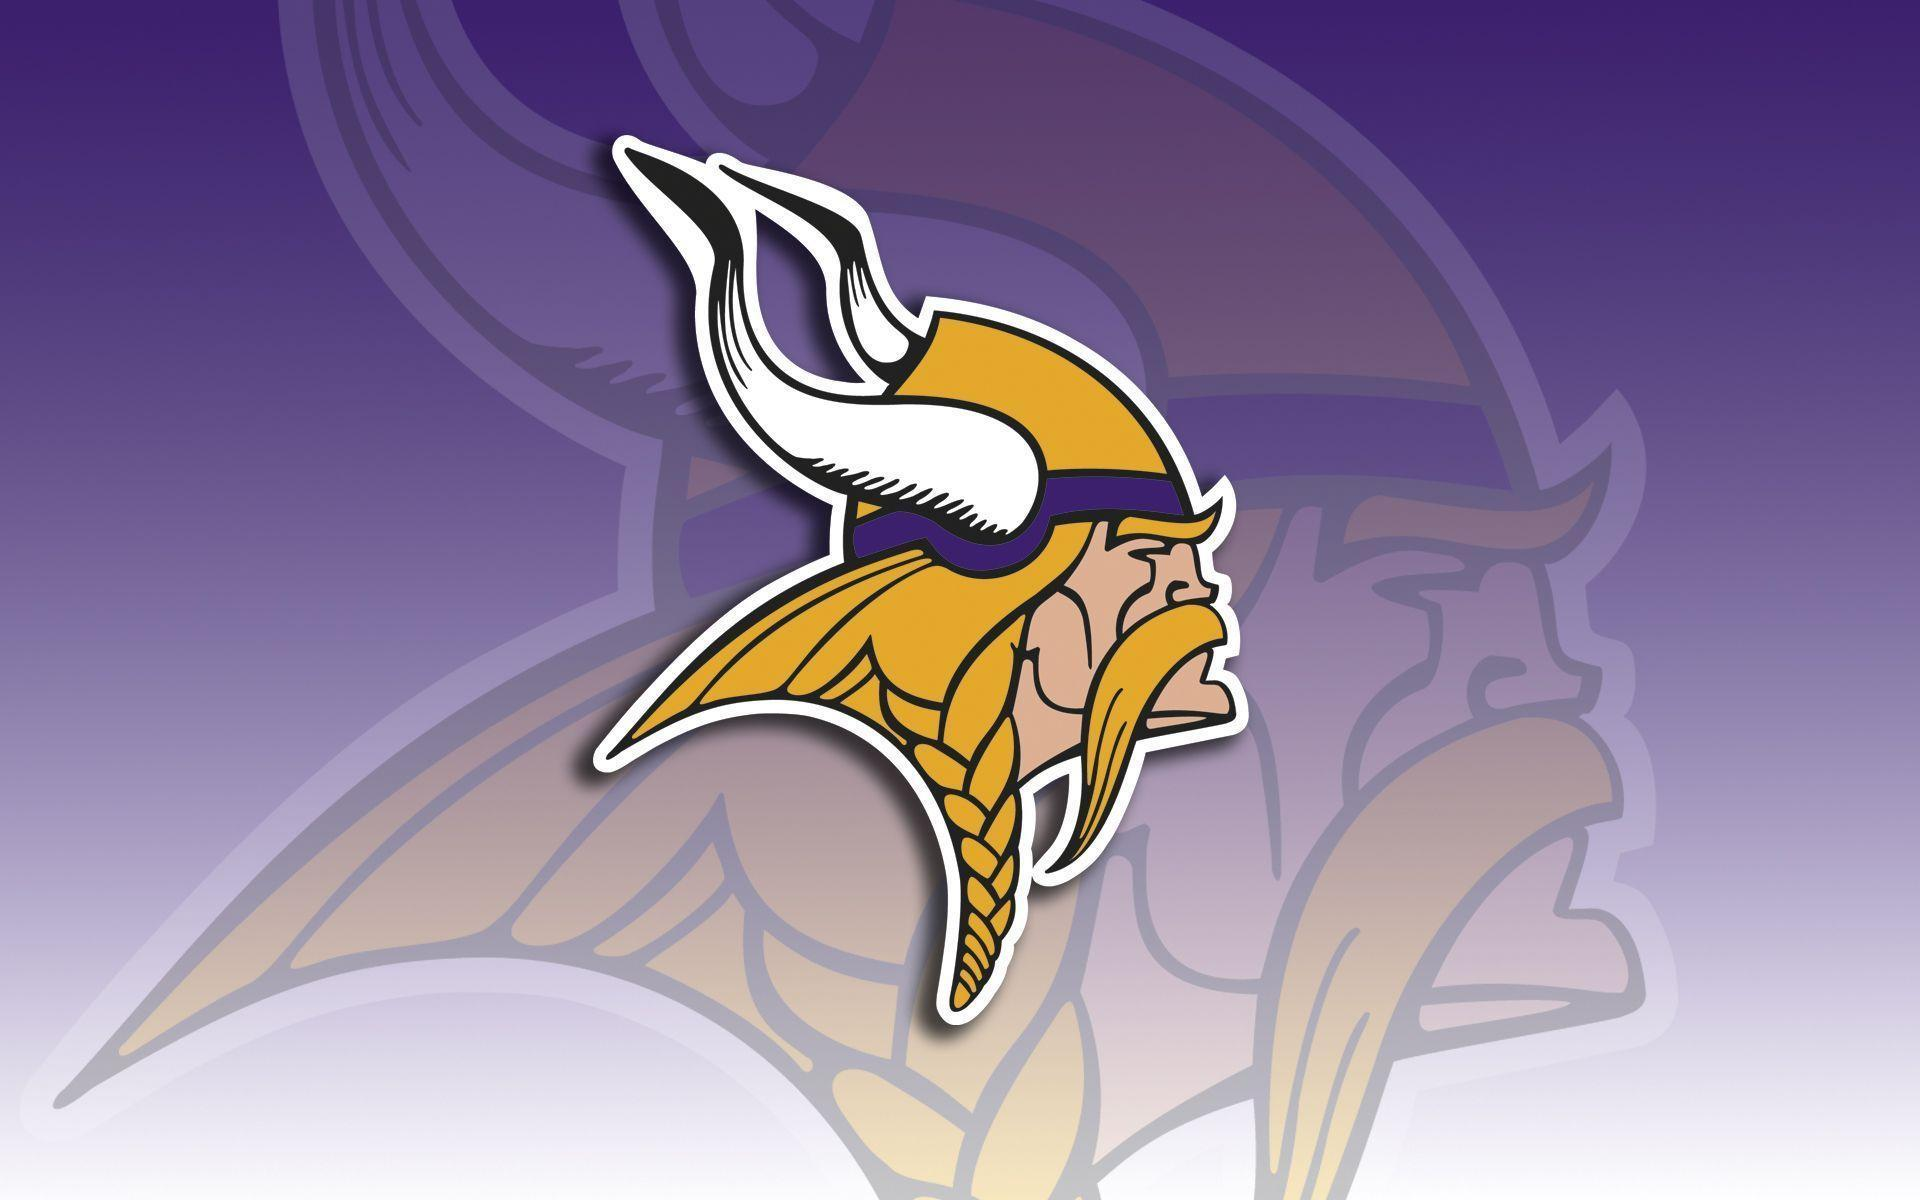 Images For > Minnesota Vikings Wallpaper For Desktop